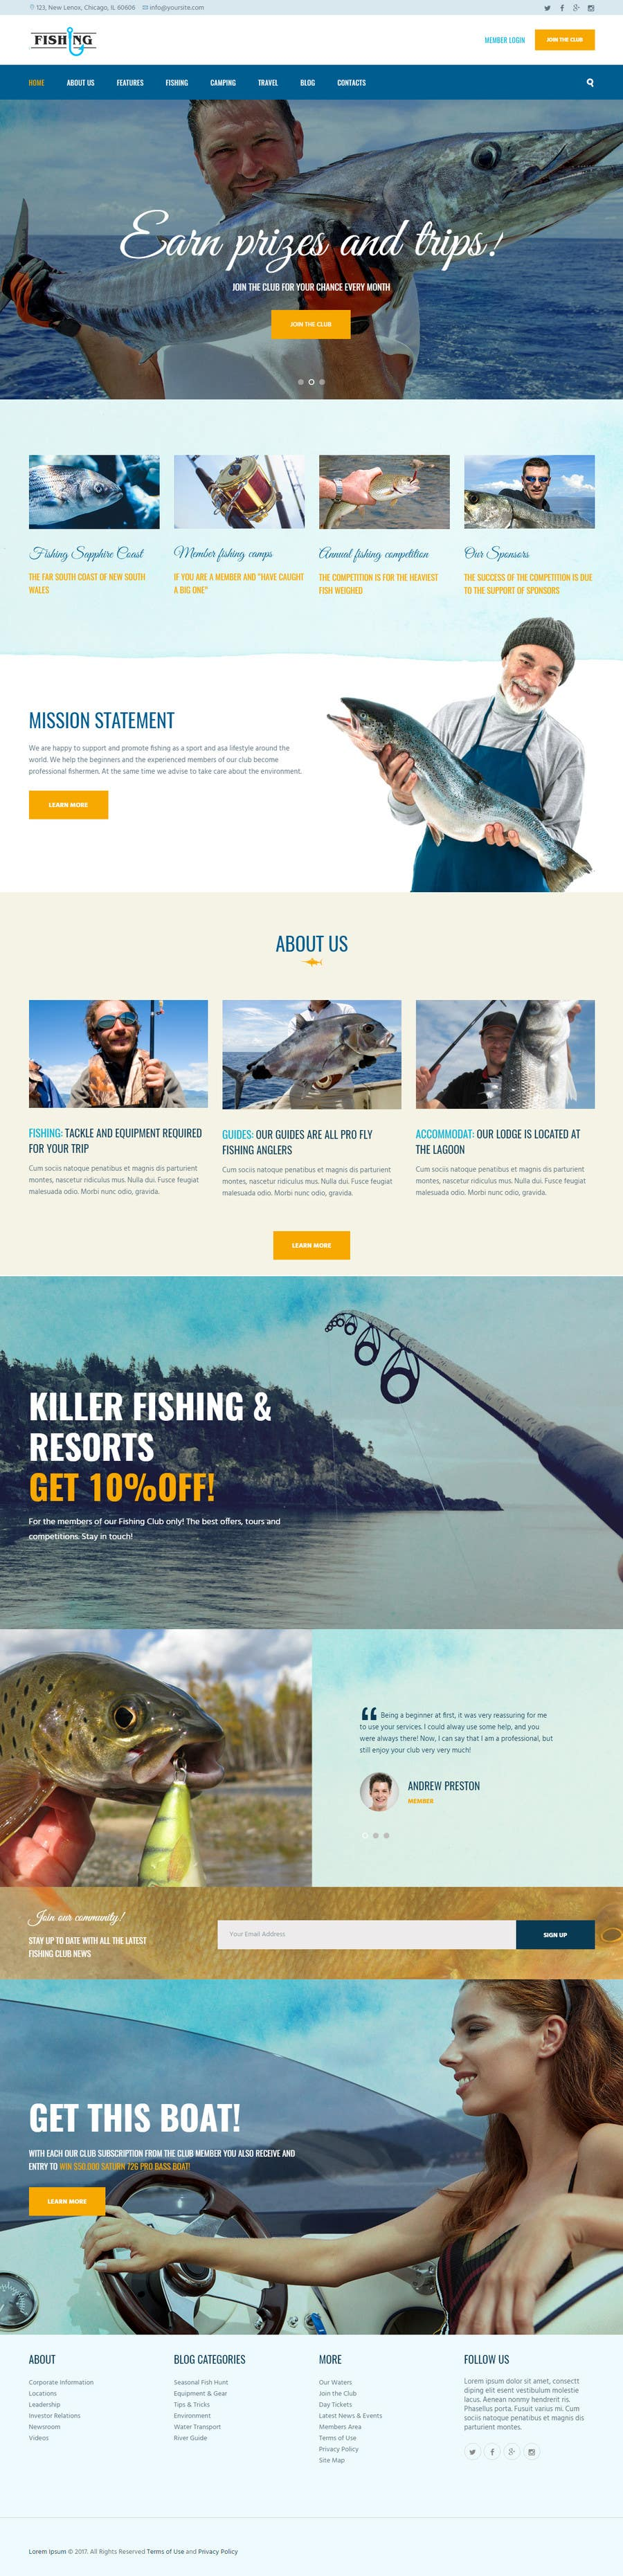 Contest Entry #7 for Design a Website Template with a Fishing Theme